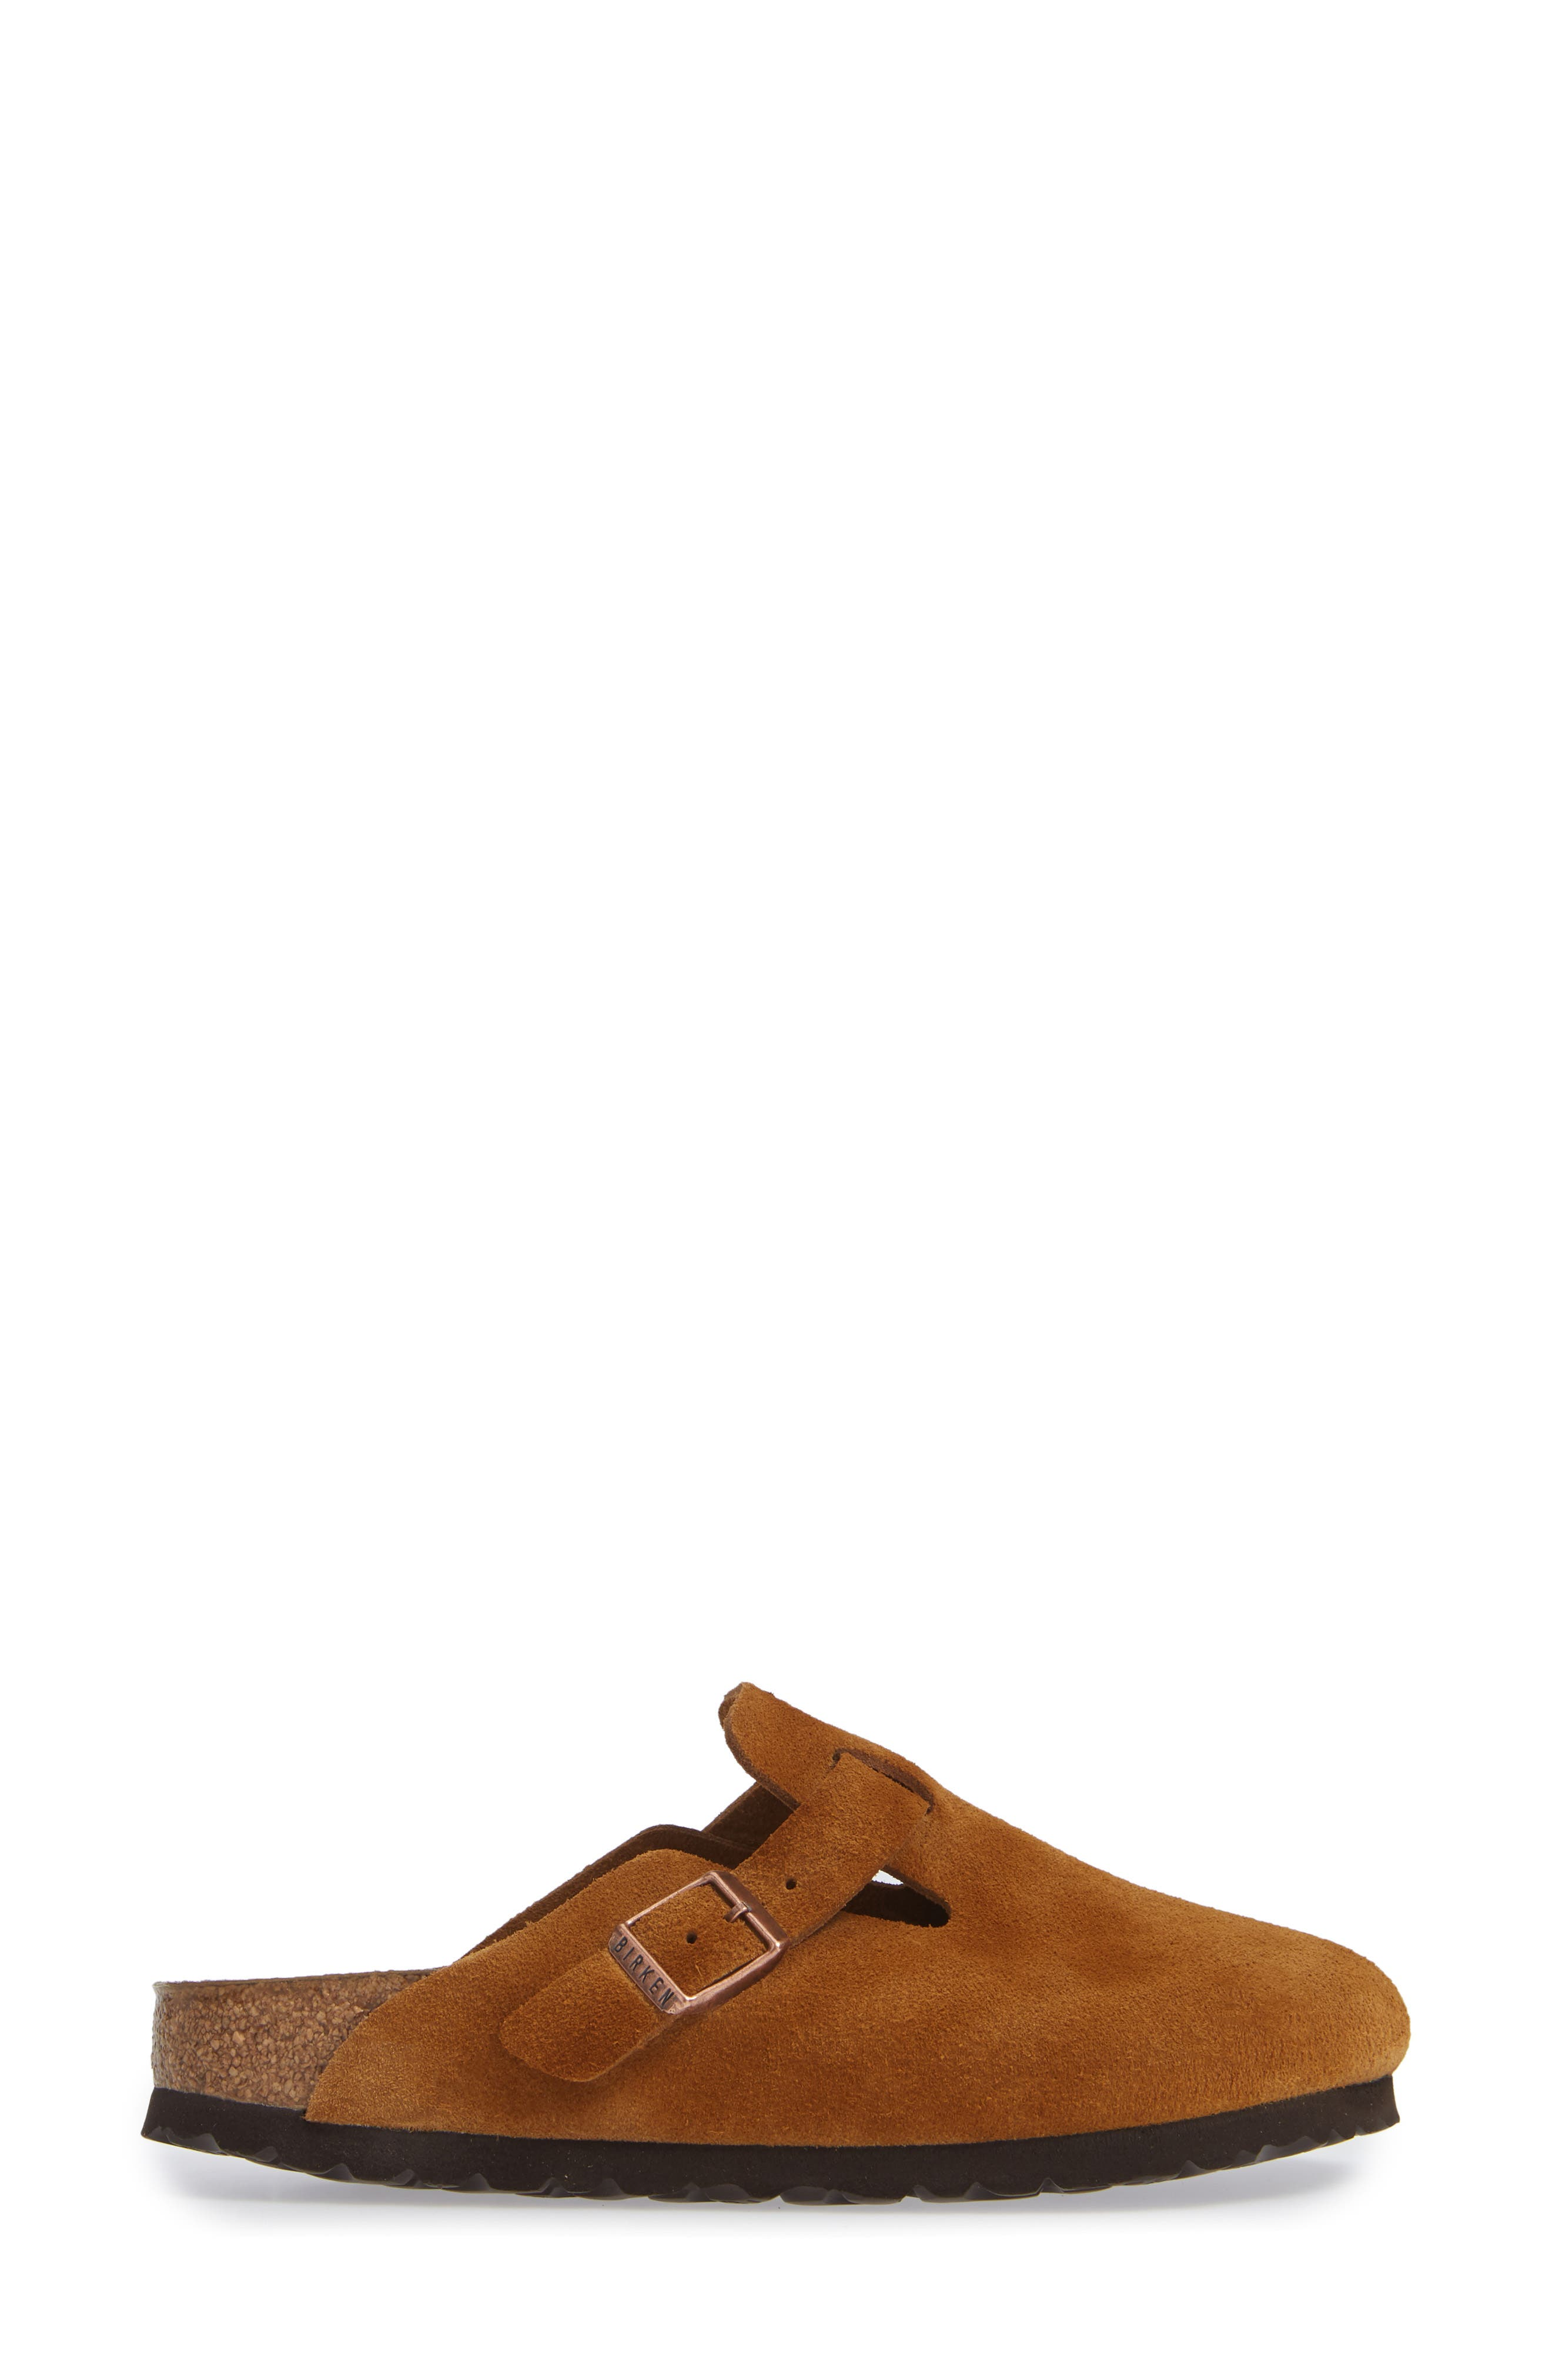 'Boston' Soft Footbed Clog,                             Alternate thumbnail 3, color,                             MINK SUEDE